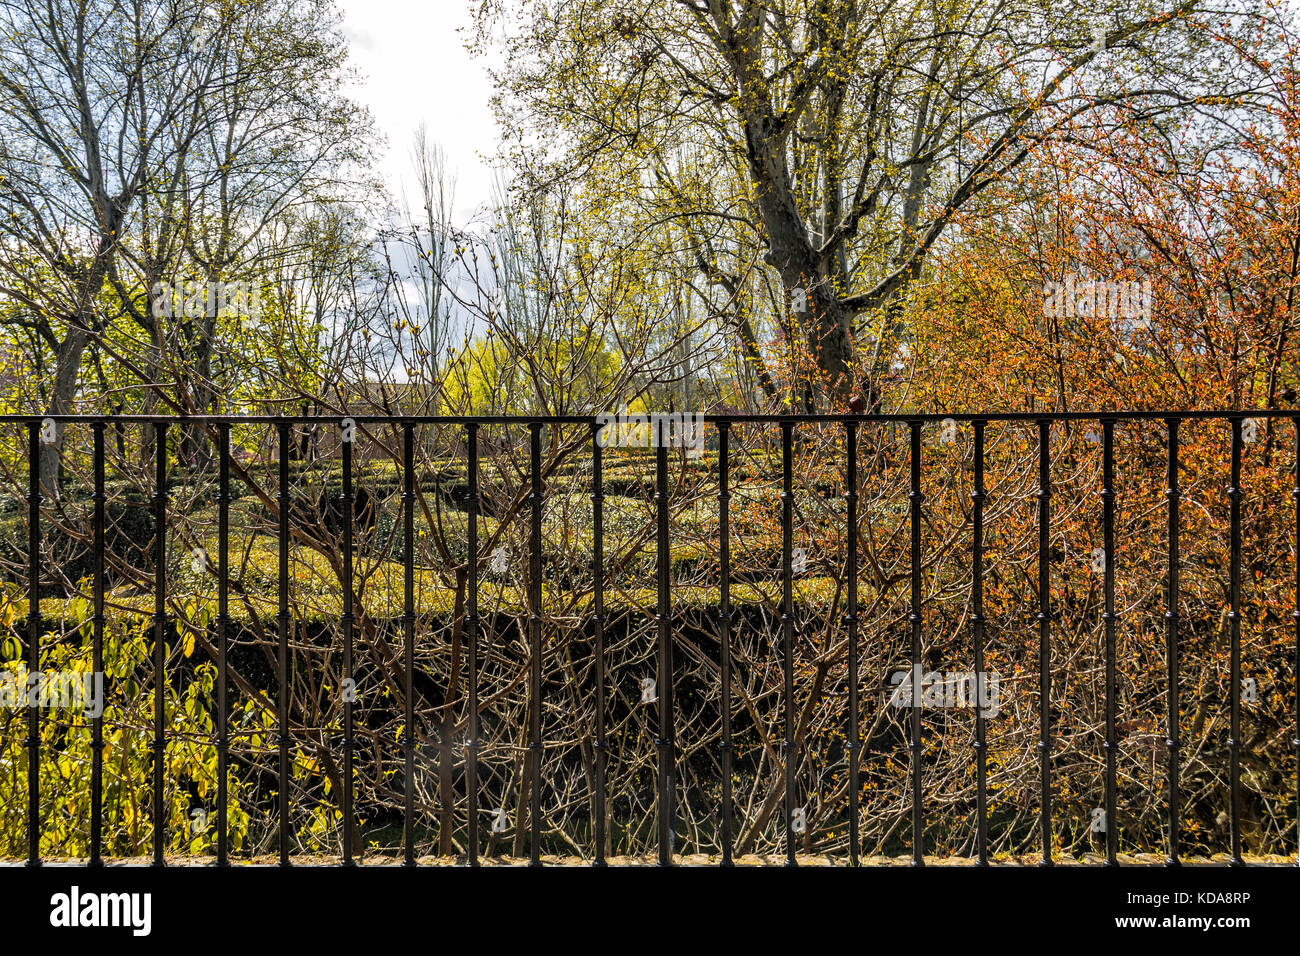 Rusty Metal Fence Stock Photos Rusty Metal Fence Stock